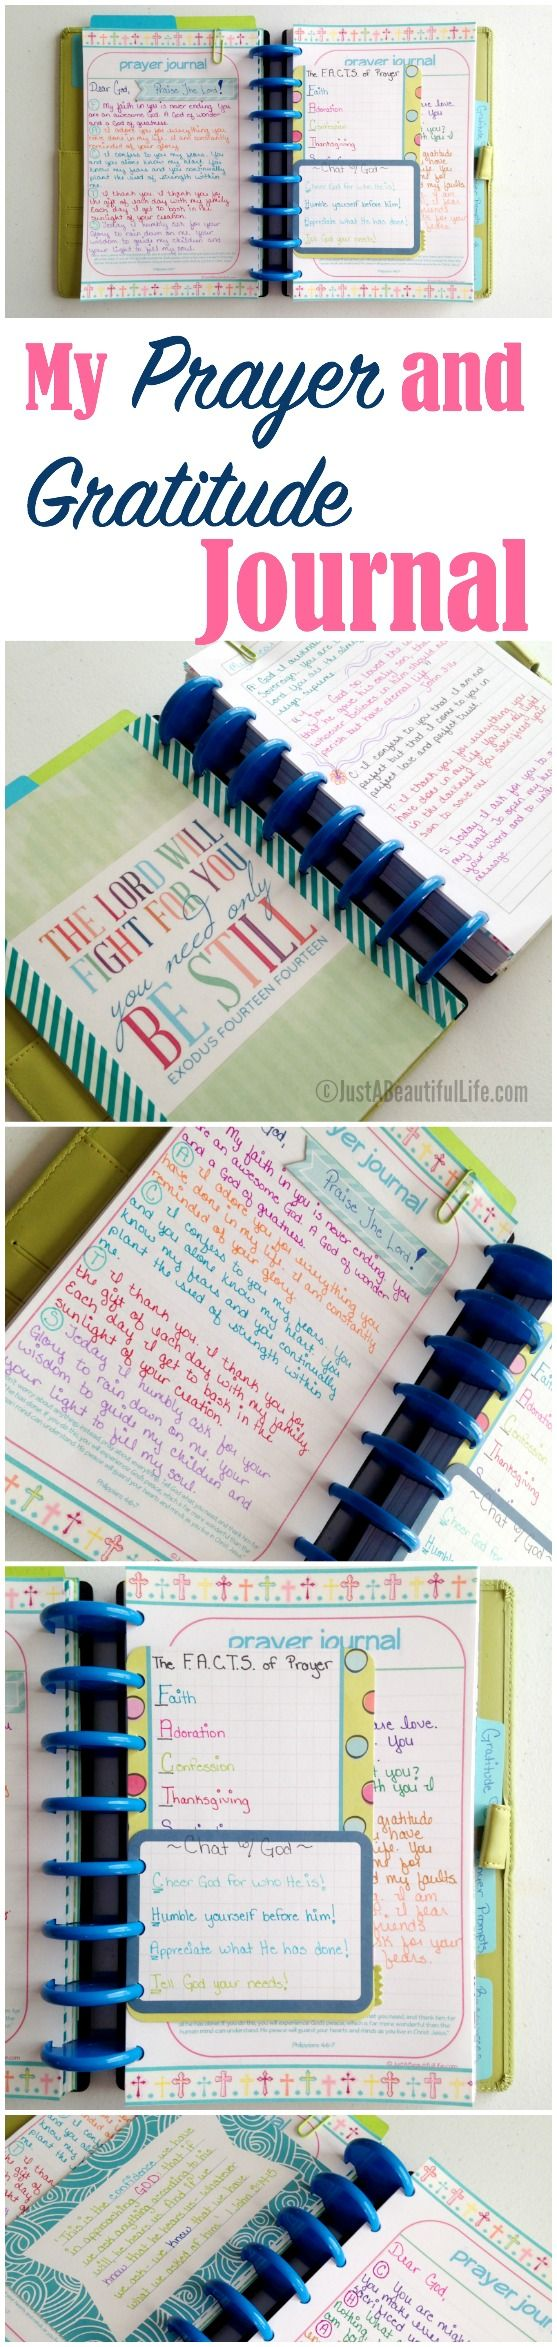 "A Prayer & Gratitude Journal by ""Hellow Grace Designs"". A newbie Christian…"